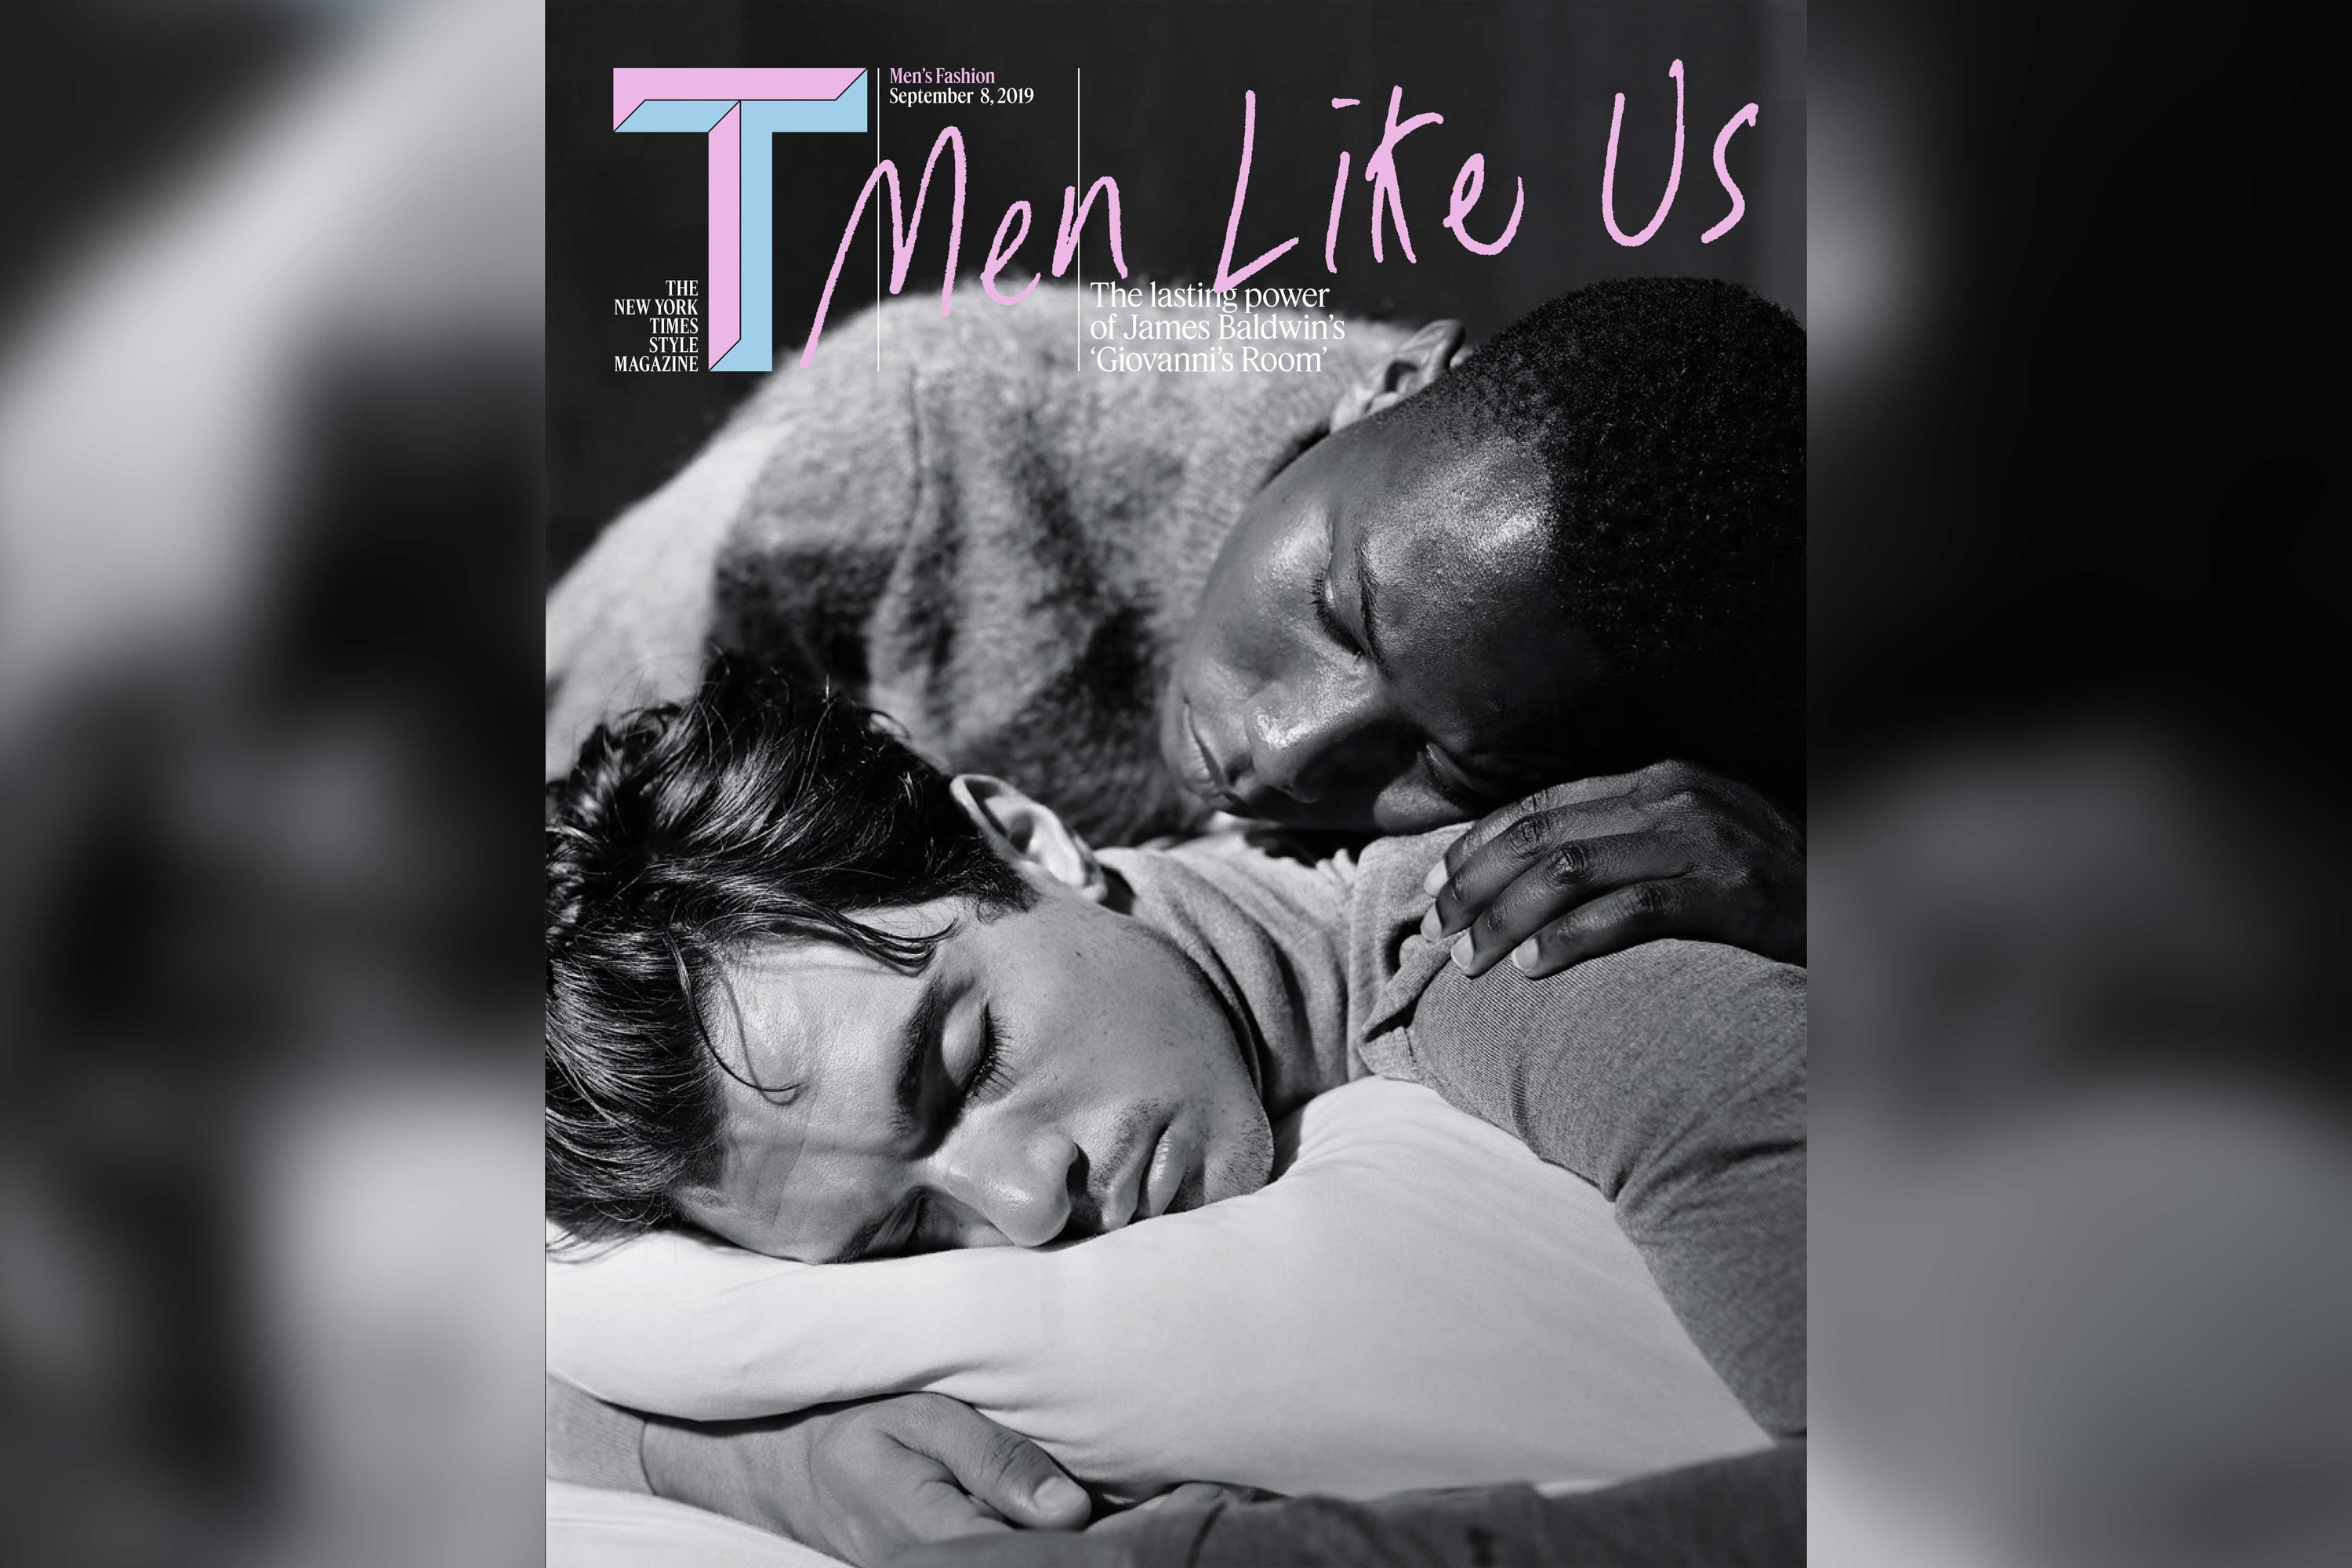 NYT's T magazine celebrates a gay-lit classic with its men's fall fashion issue